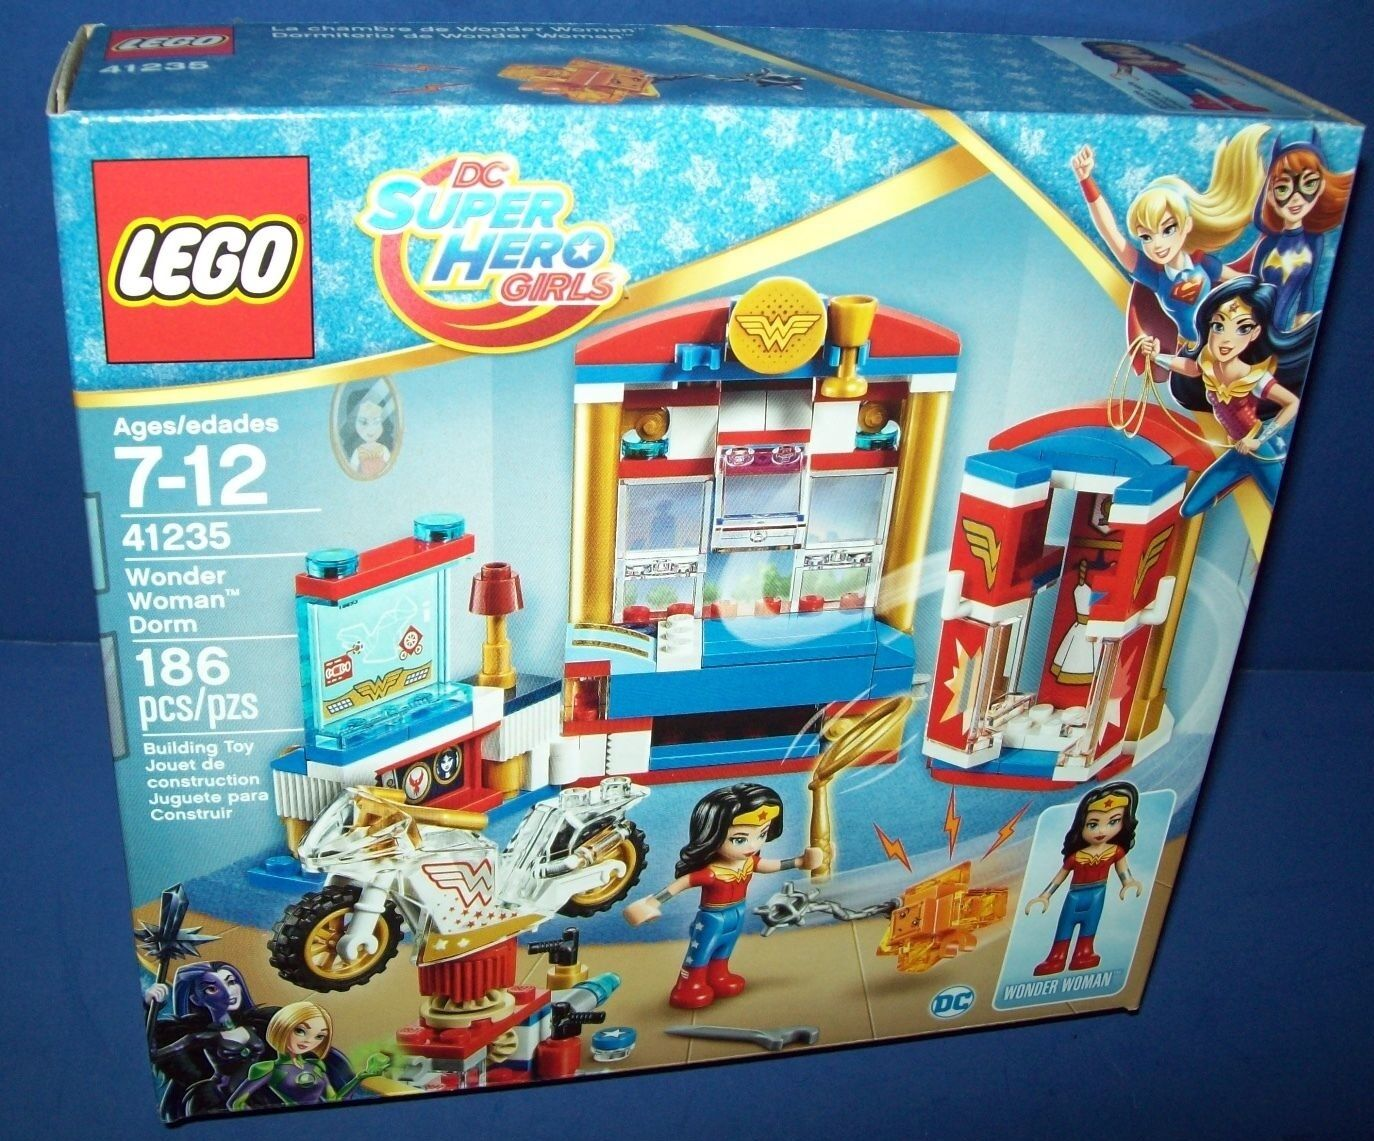 LEGO 41235 DC Super Hero Girls WONDER Frau DORM sealed in hand priority express